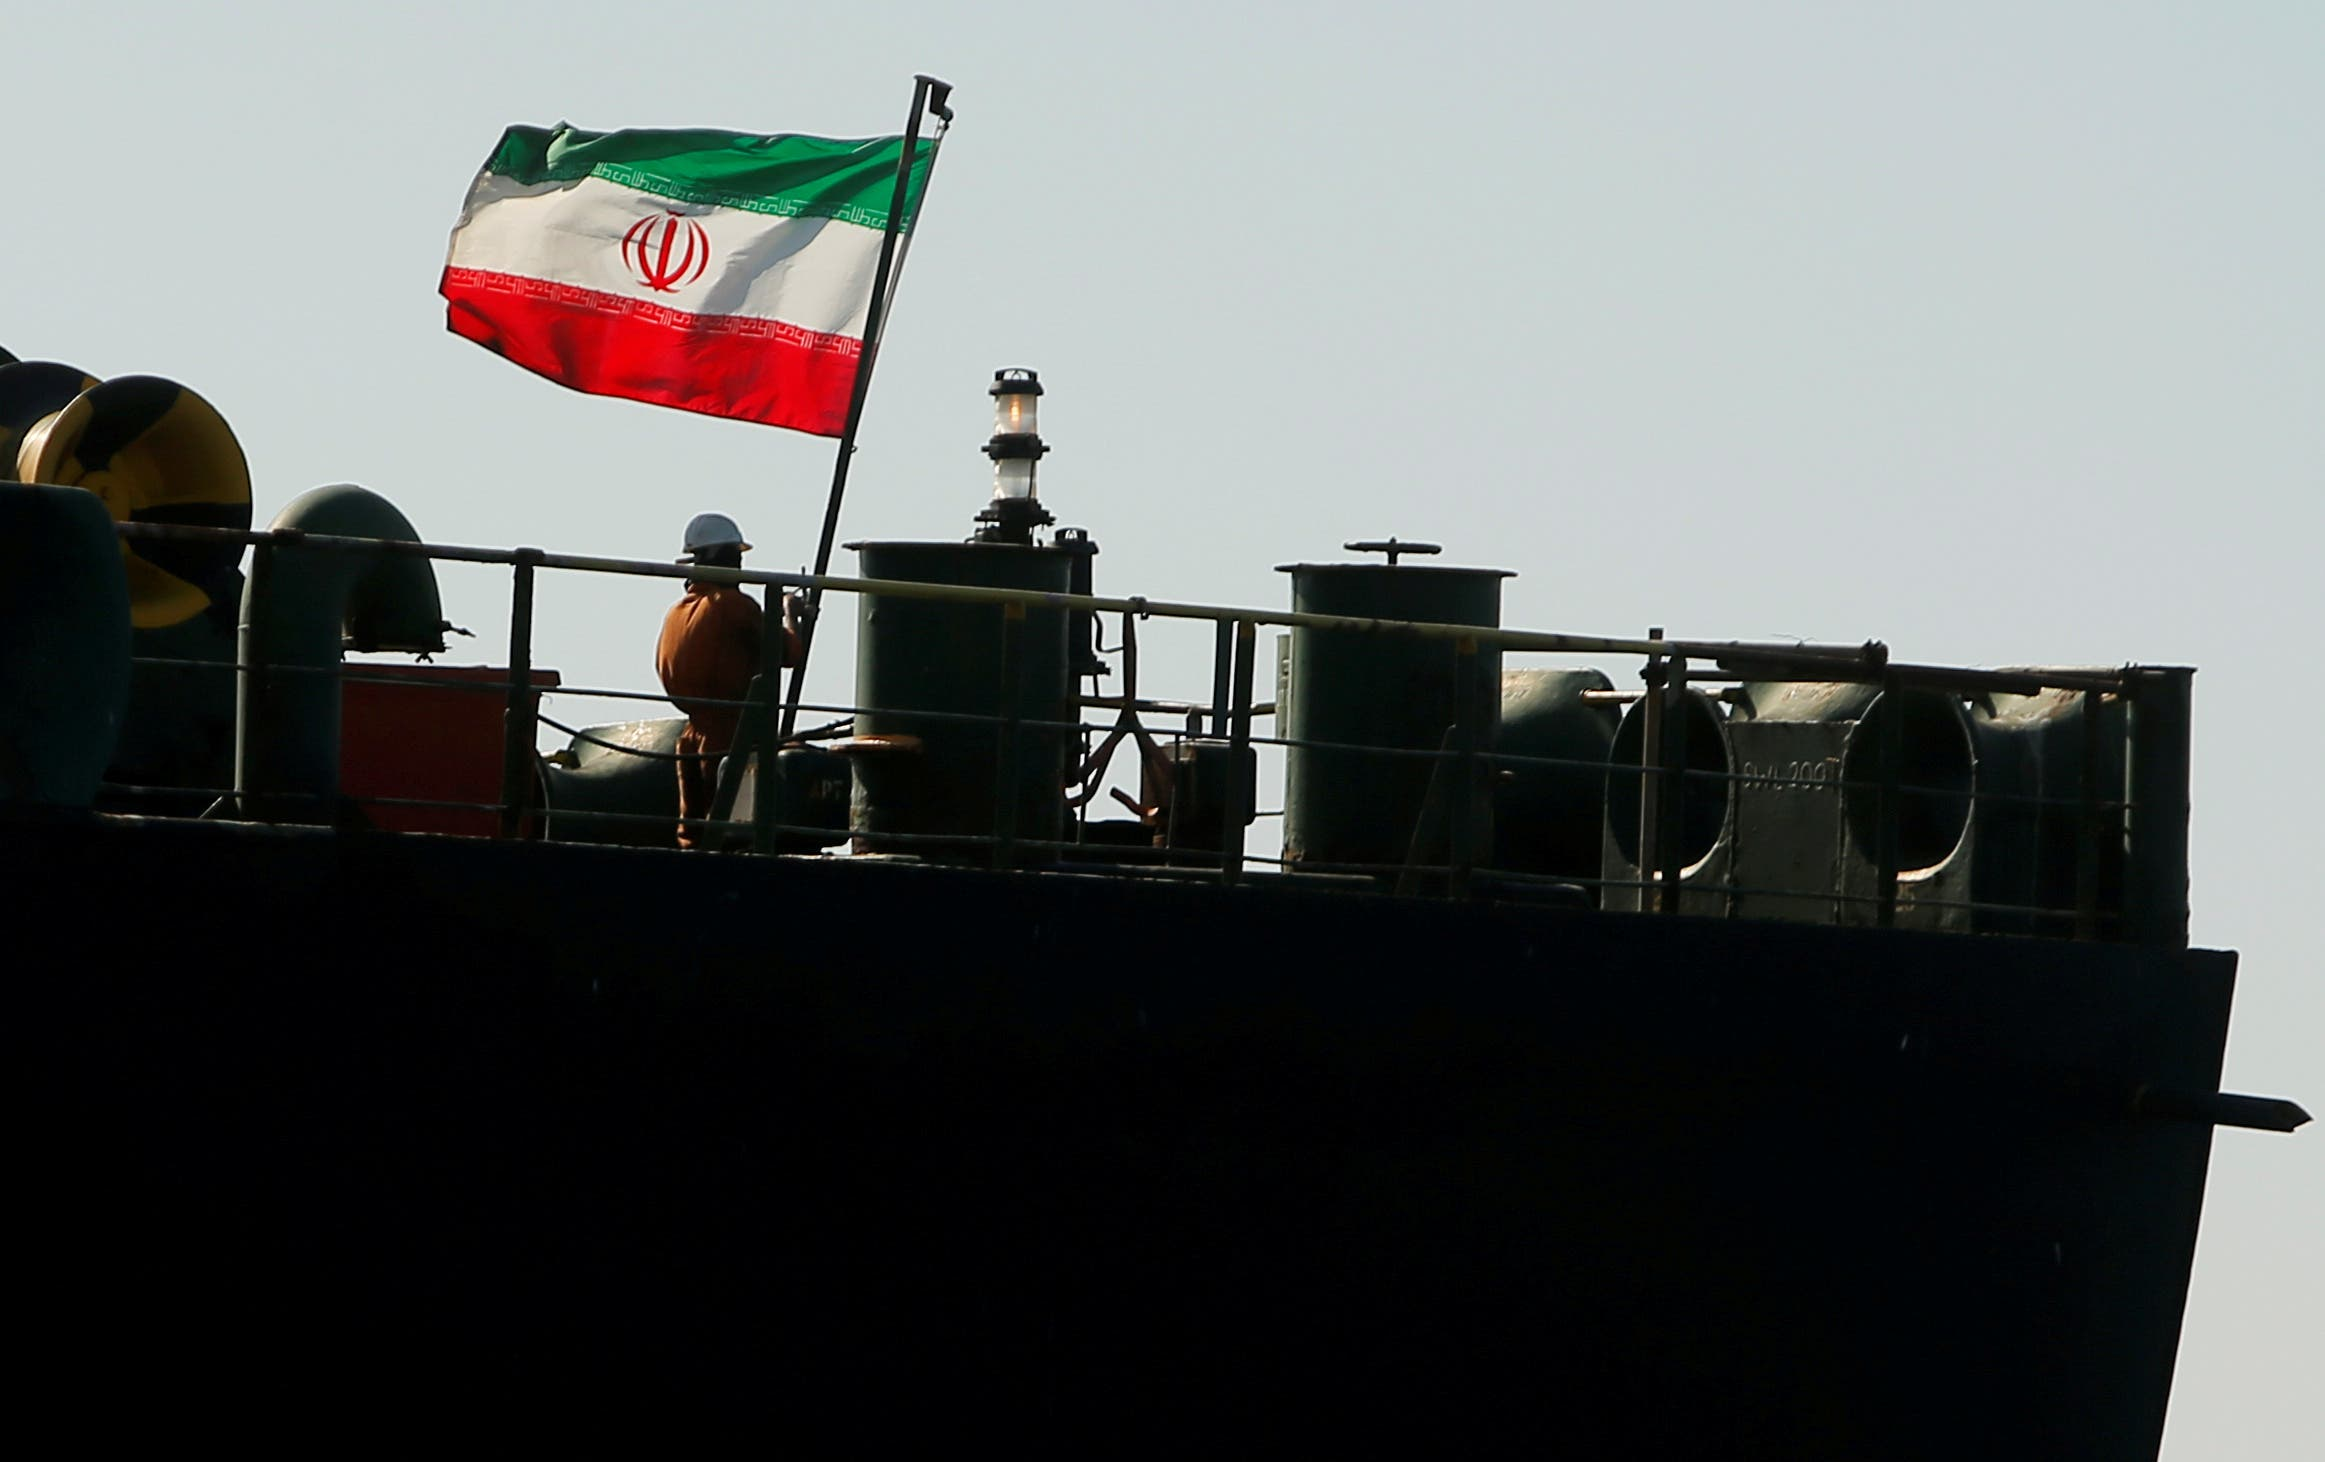 A crew member raises the Iranian flag on Iranian oil tanker Adrian Darya 1 in the Strait of Gibraltar, Spain, August 18, 2019. (Reuters)